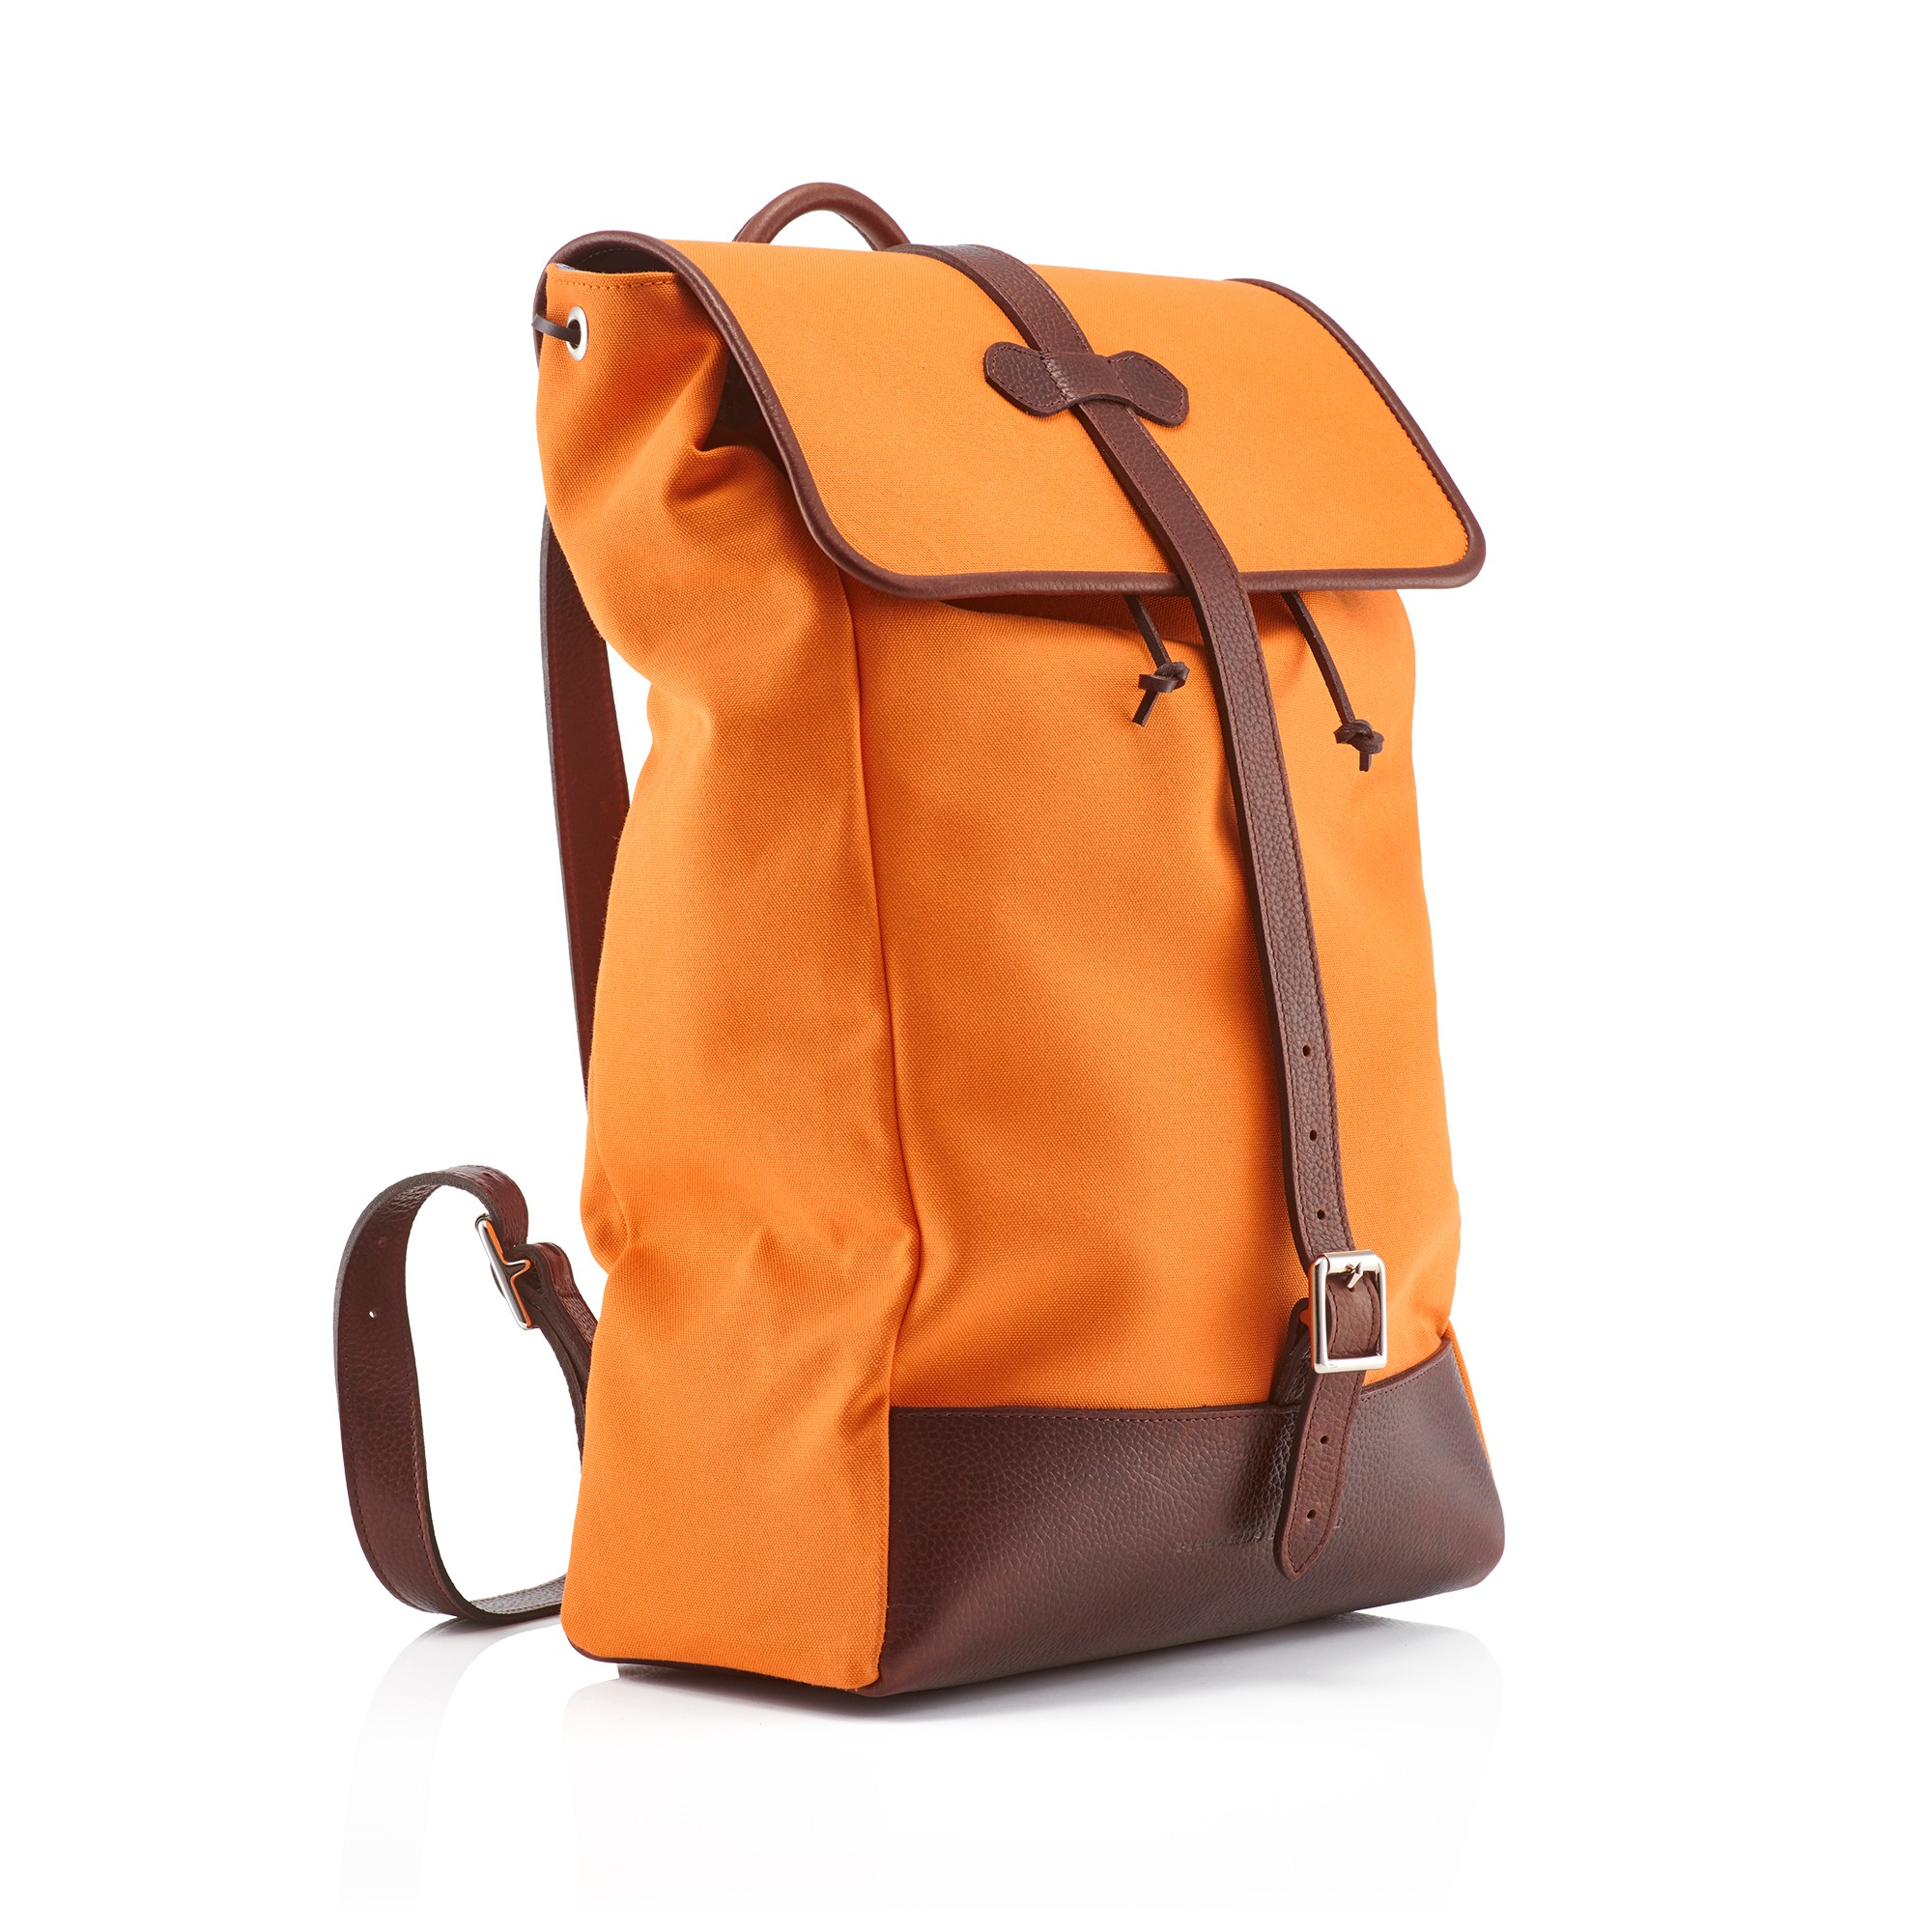 Orange backpack photo